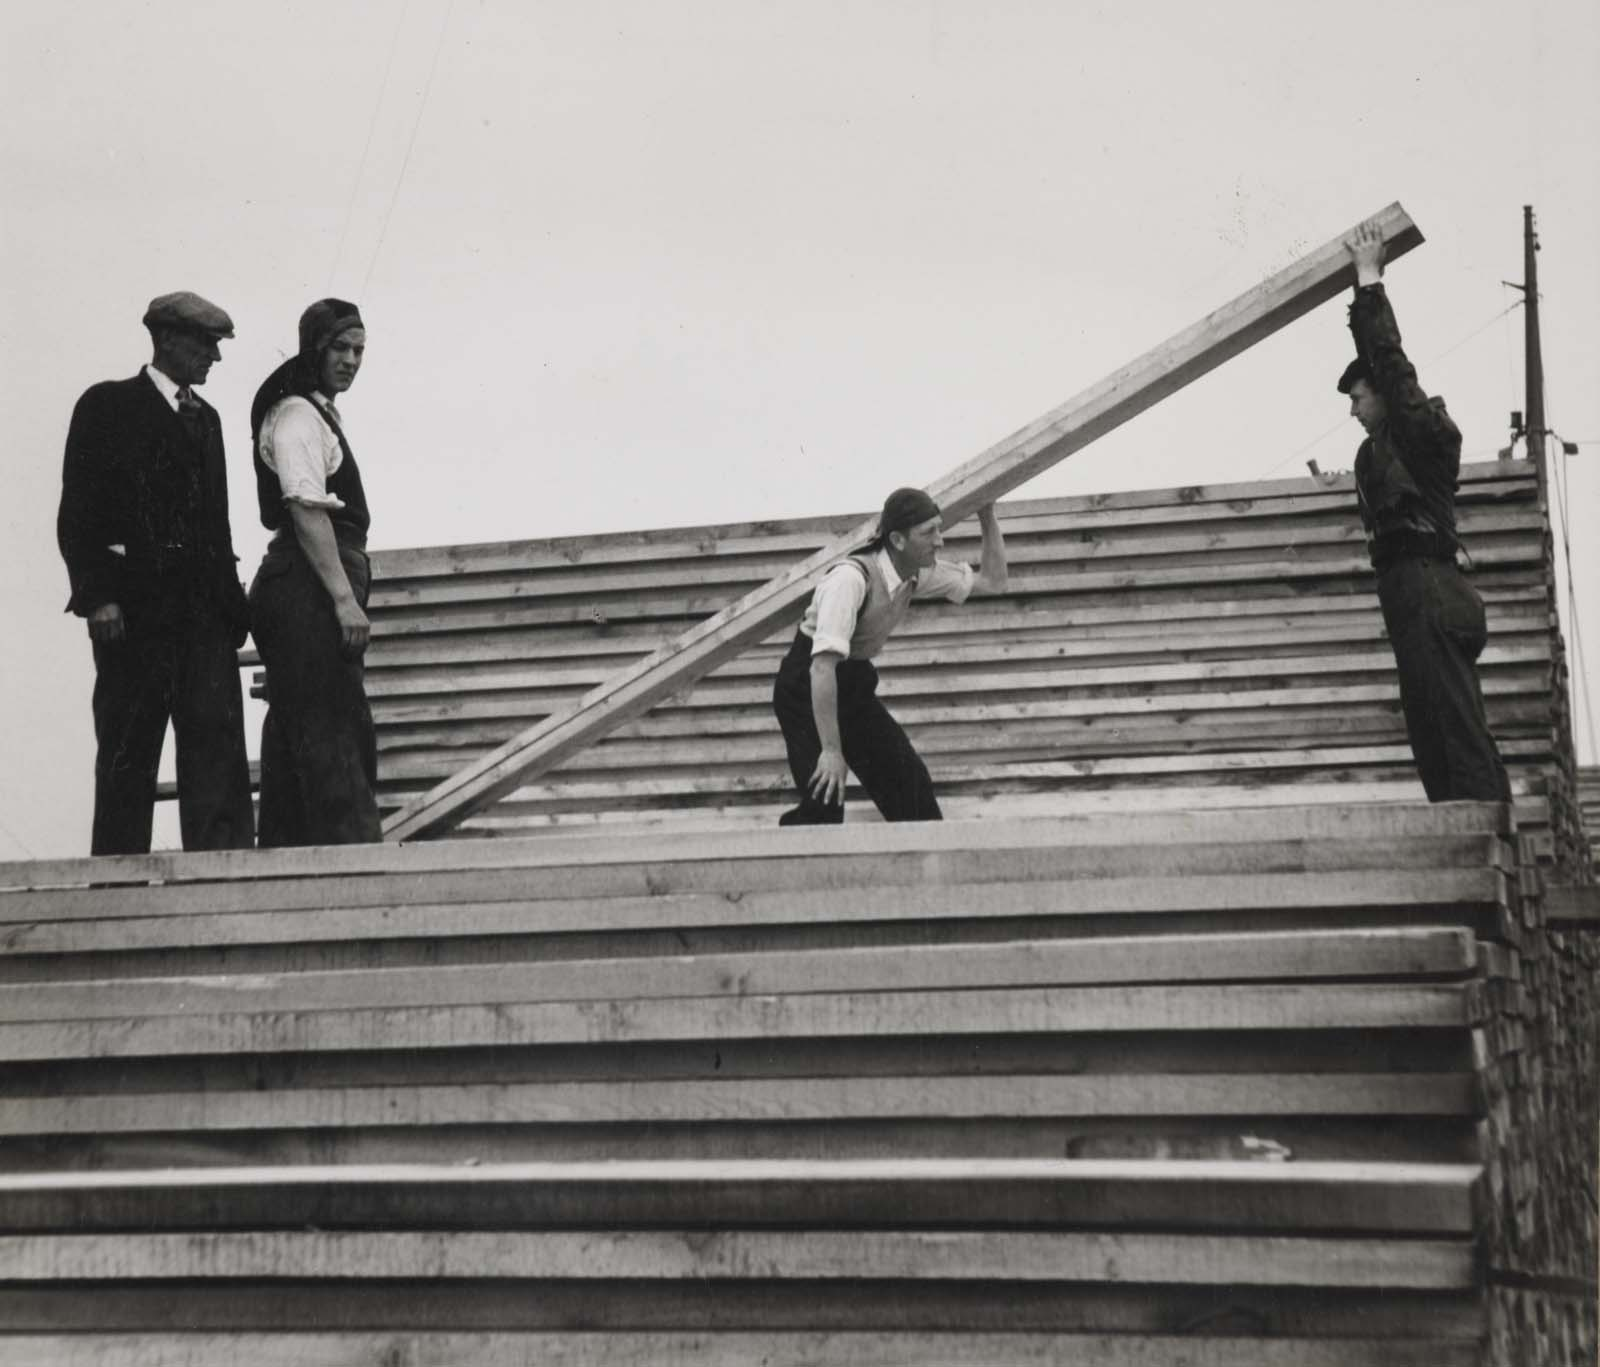 photo of a man carrying a large beam watched by other men